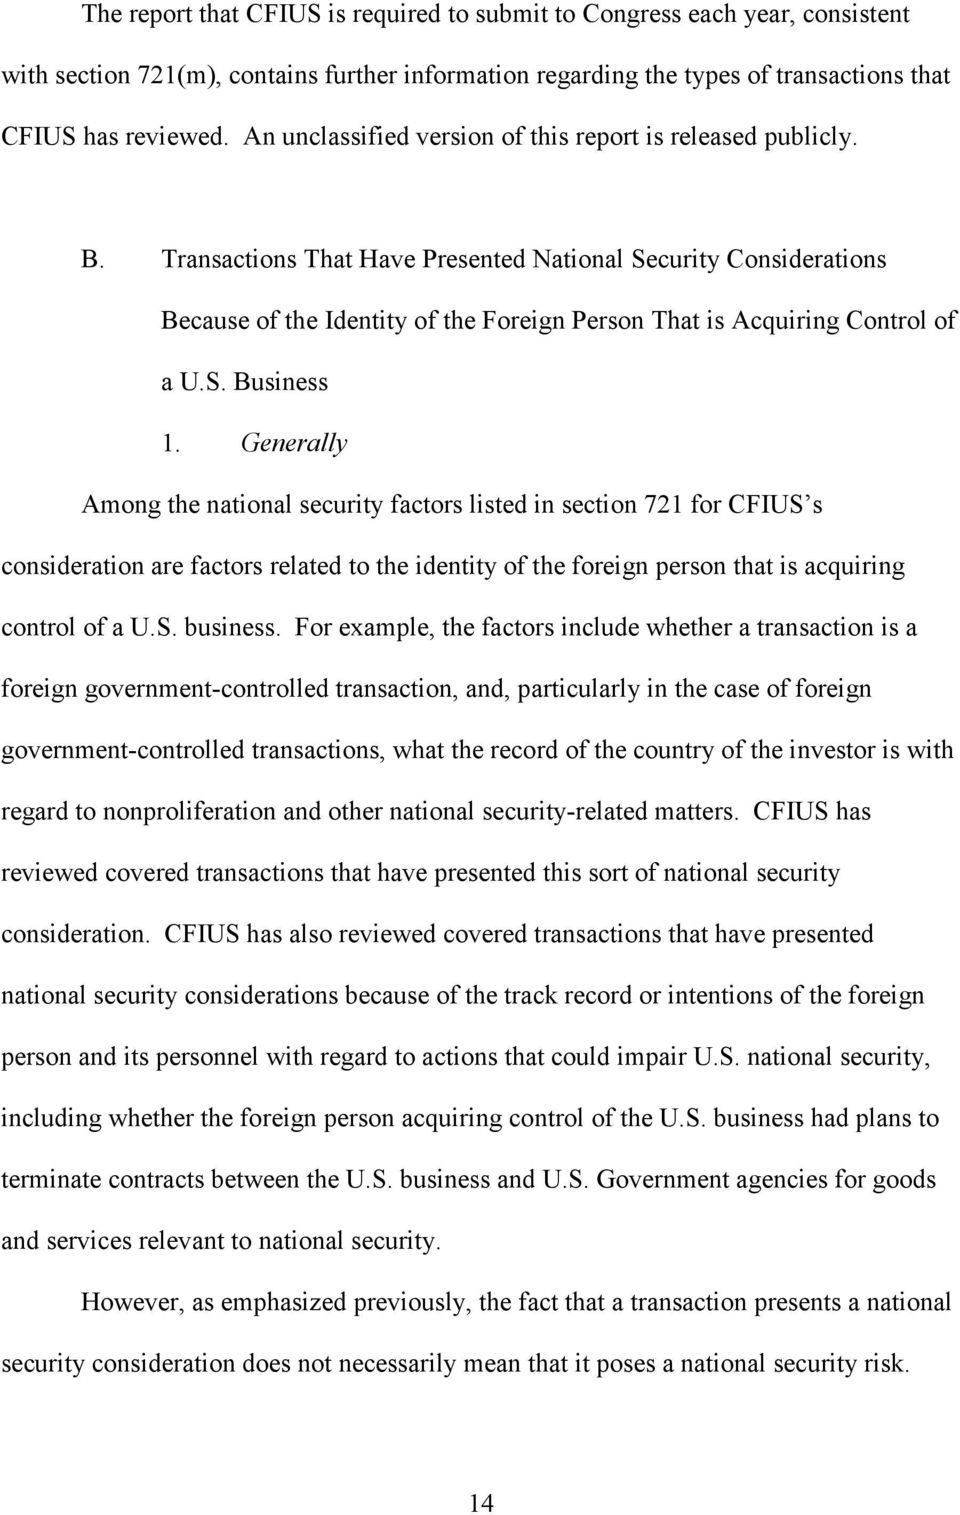 Transactions That Have Presented National Security Considerations Because of the Identity of the Foreign Person That is Acquiring Control of a U.S. Business 1.